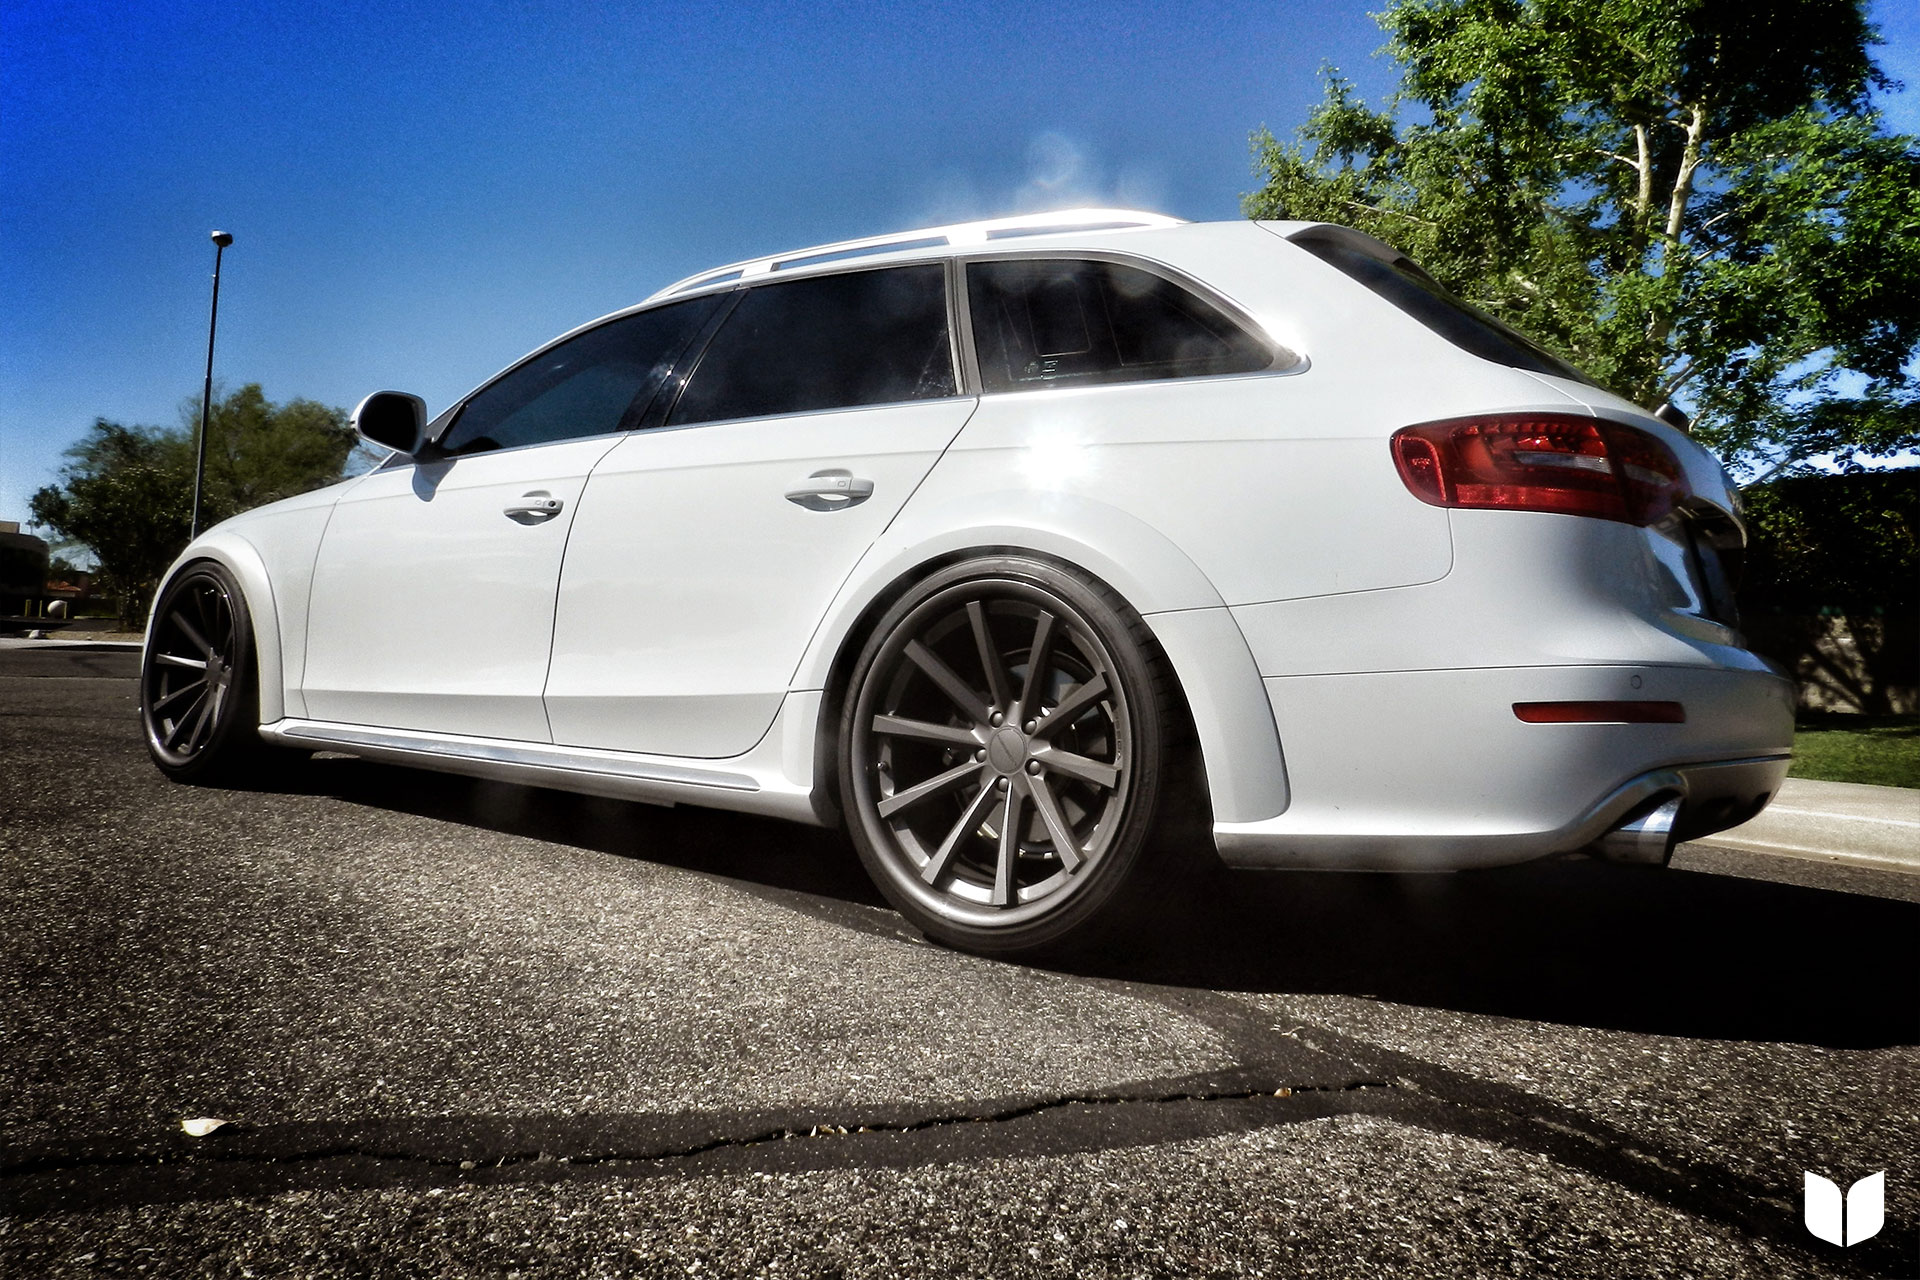 2014 Audi B8 Allroad H&R Coilovers Vossen Wheels AWE Exhaust Parts Score